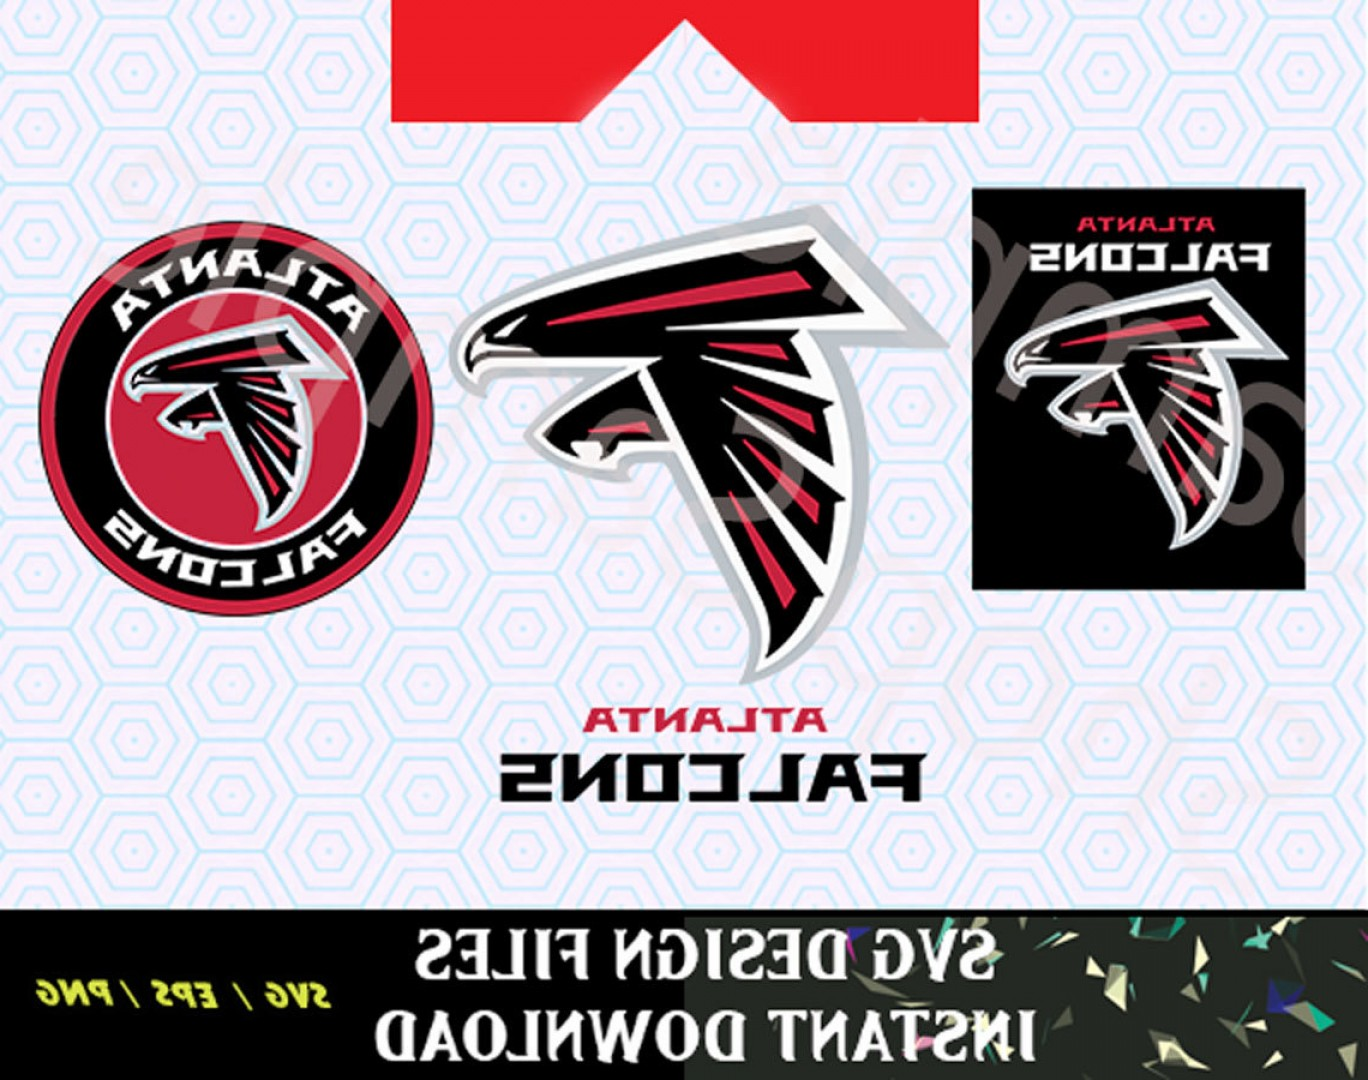 Atlanta Falcons Logo Vector Silhouette: Atlanta Falcons Logo Svg Vinyl Cutting Decal For Mugs T Shirts Cars Svg Files For Silhouette Cameo Cut Files Svg Car Decal